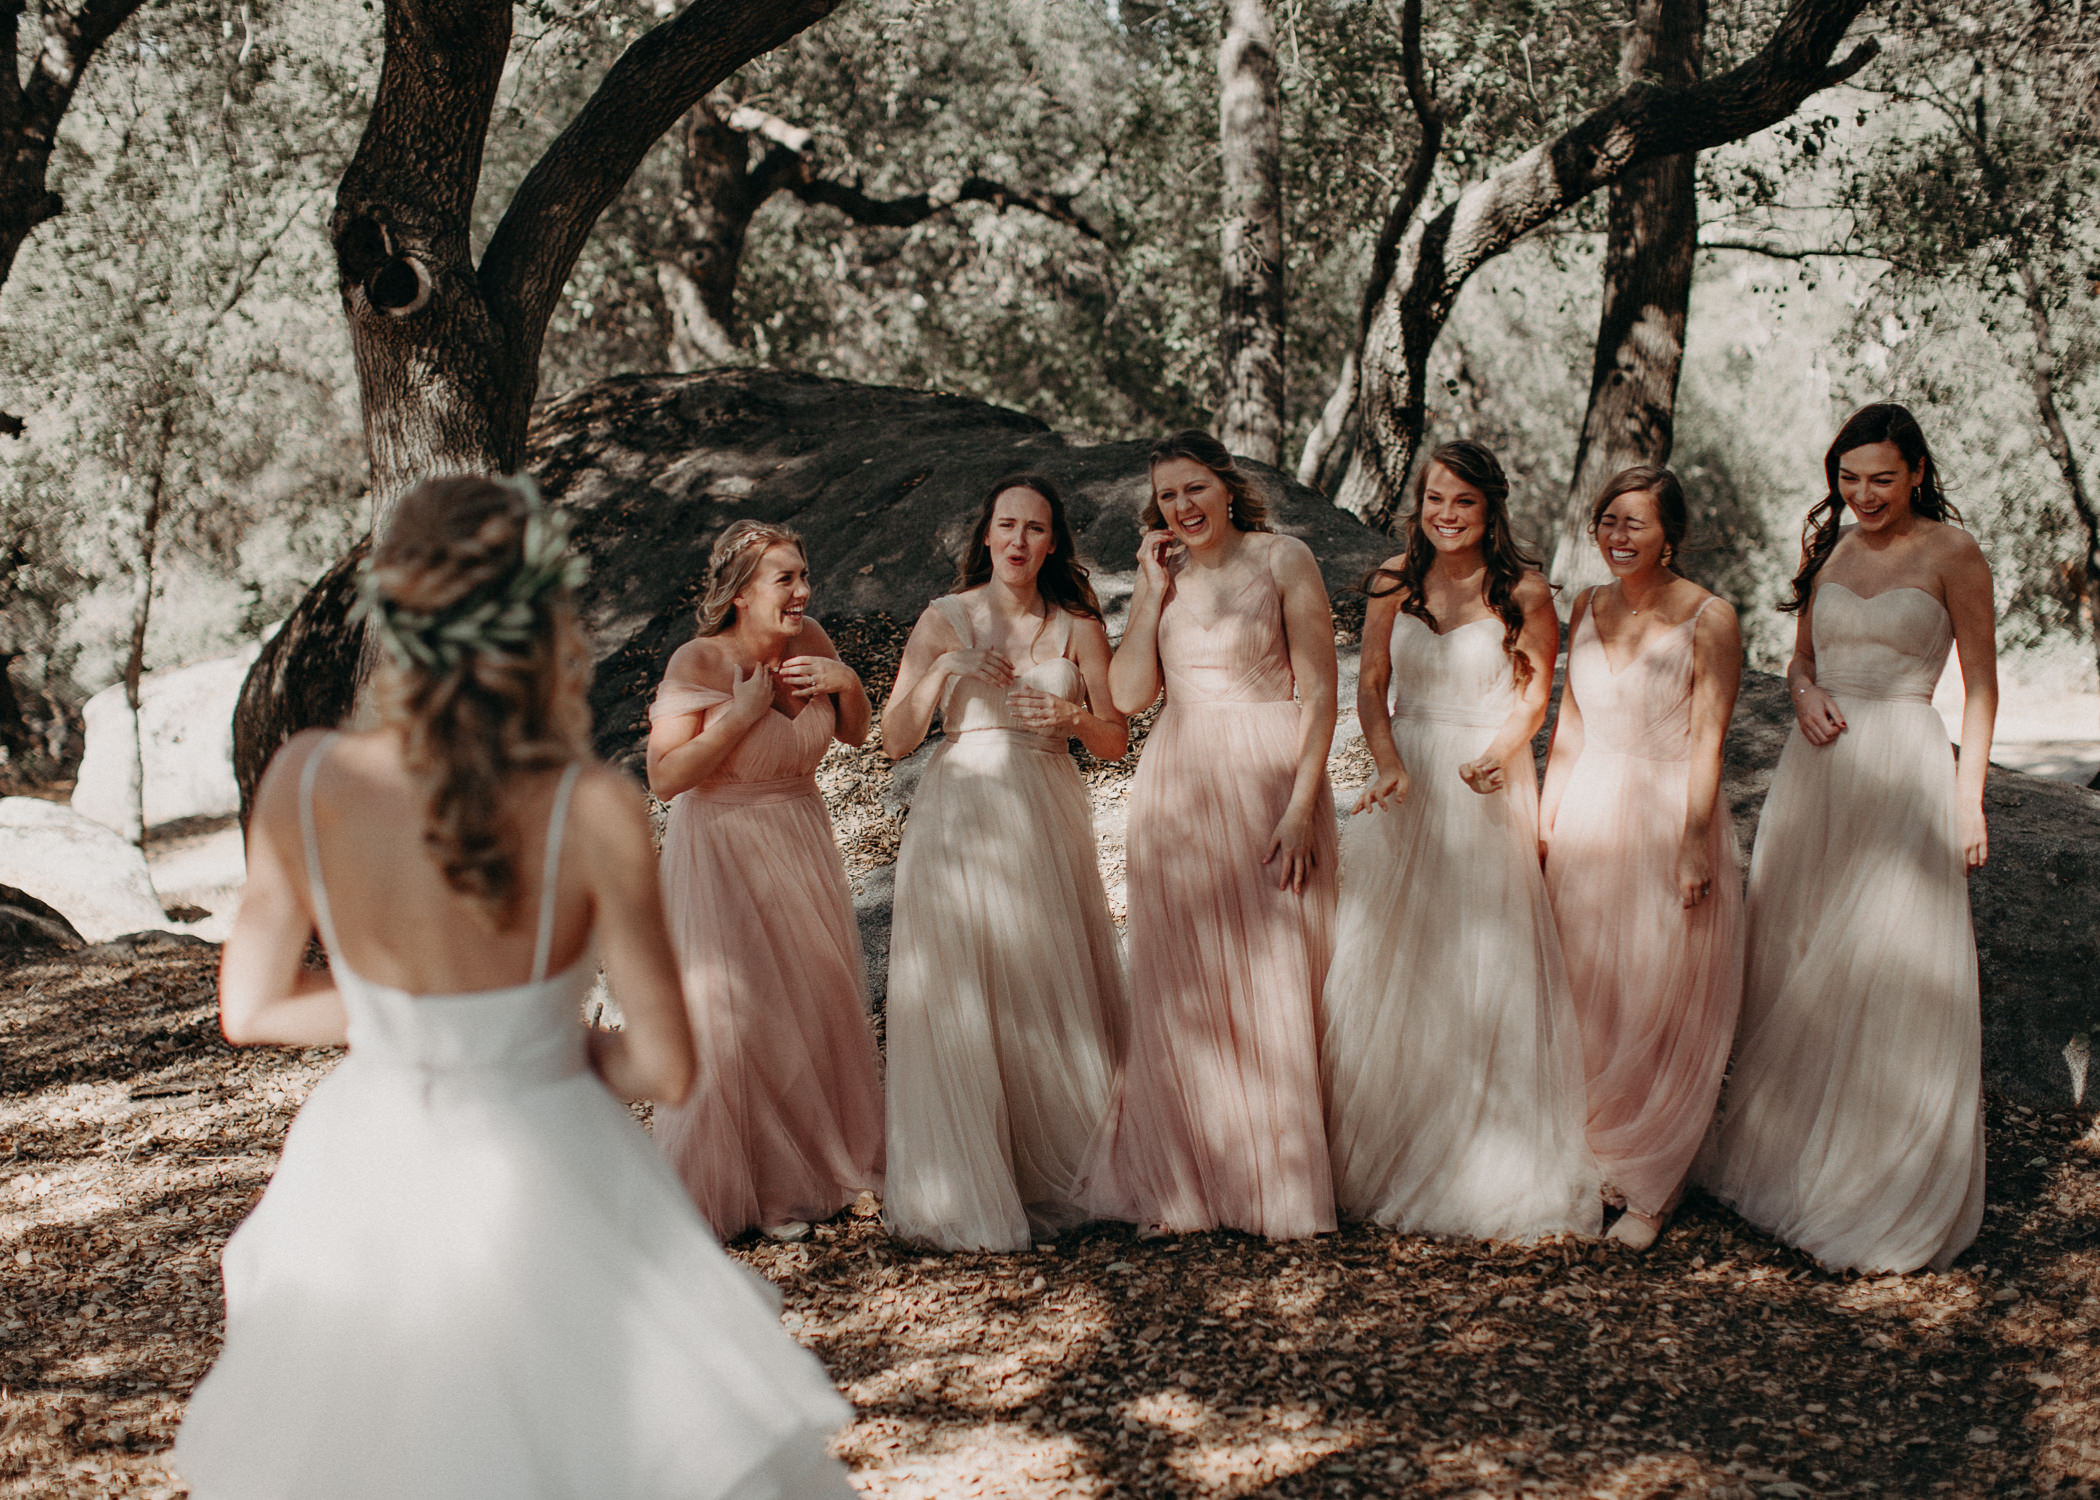 45 - Wedding details - Bridesmaids review : first look and wedding venue San Diego - Ramona - CA - Atlanta Wedding Photographer .jpg.JPG